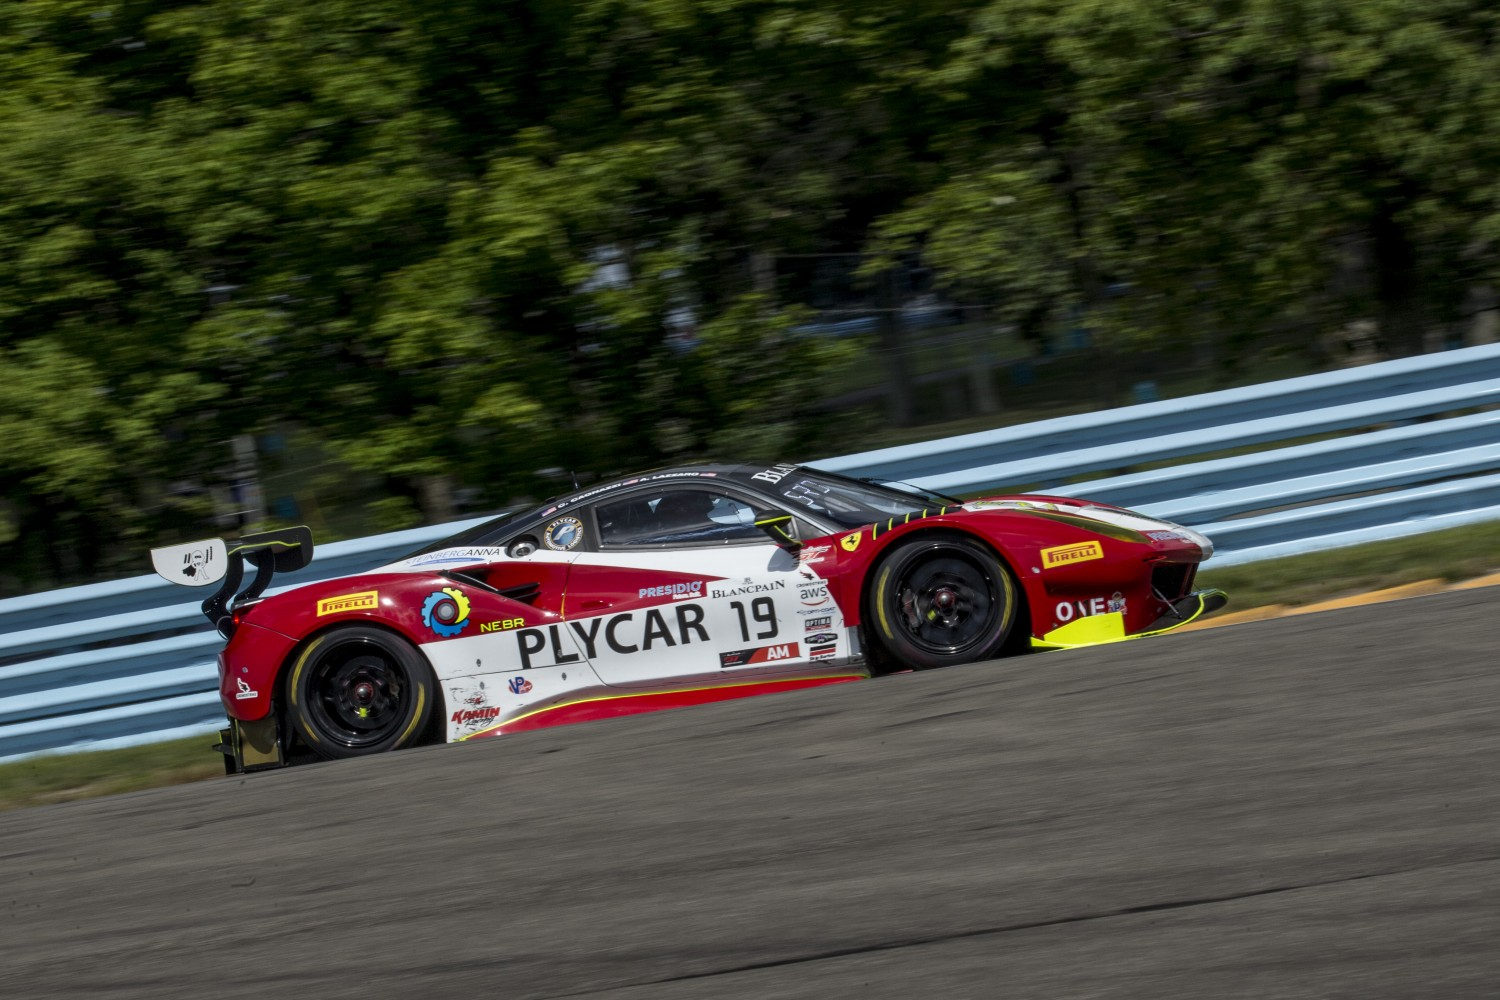 #19 Ferrari 488 GT3 of Christopher Cagnazzi and Anthony Lazzaro, One11 Competition, Watkins Glen World Challenge America, Watkins Glen NY  | SRO Motorsports Group